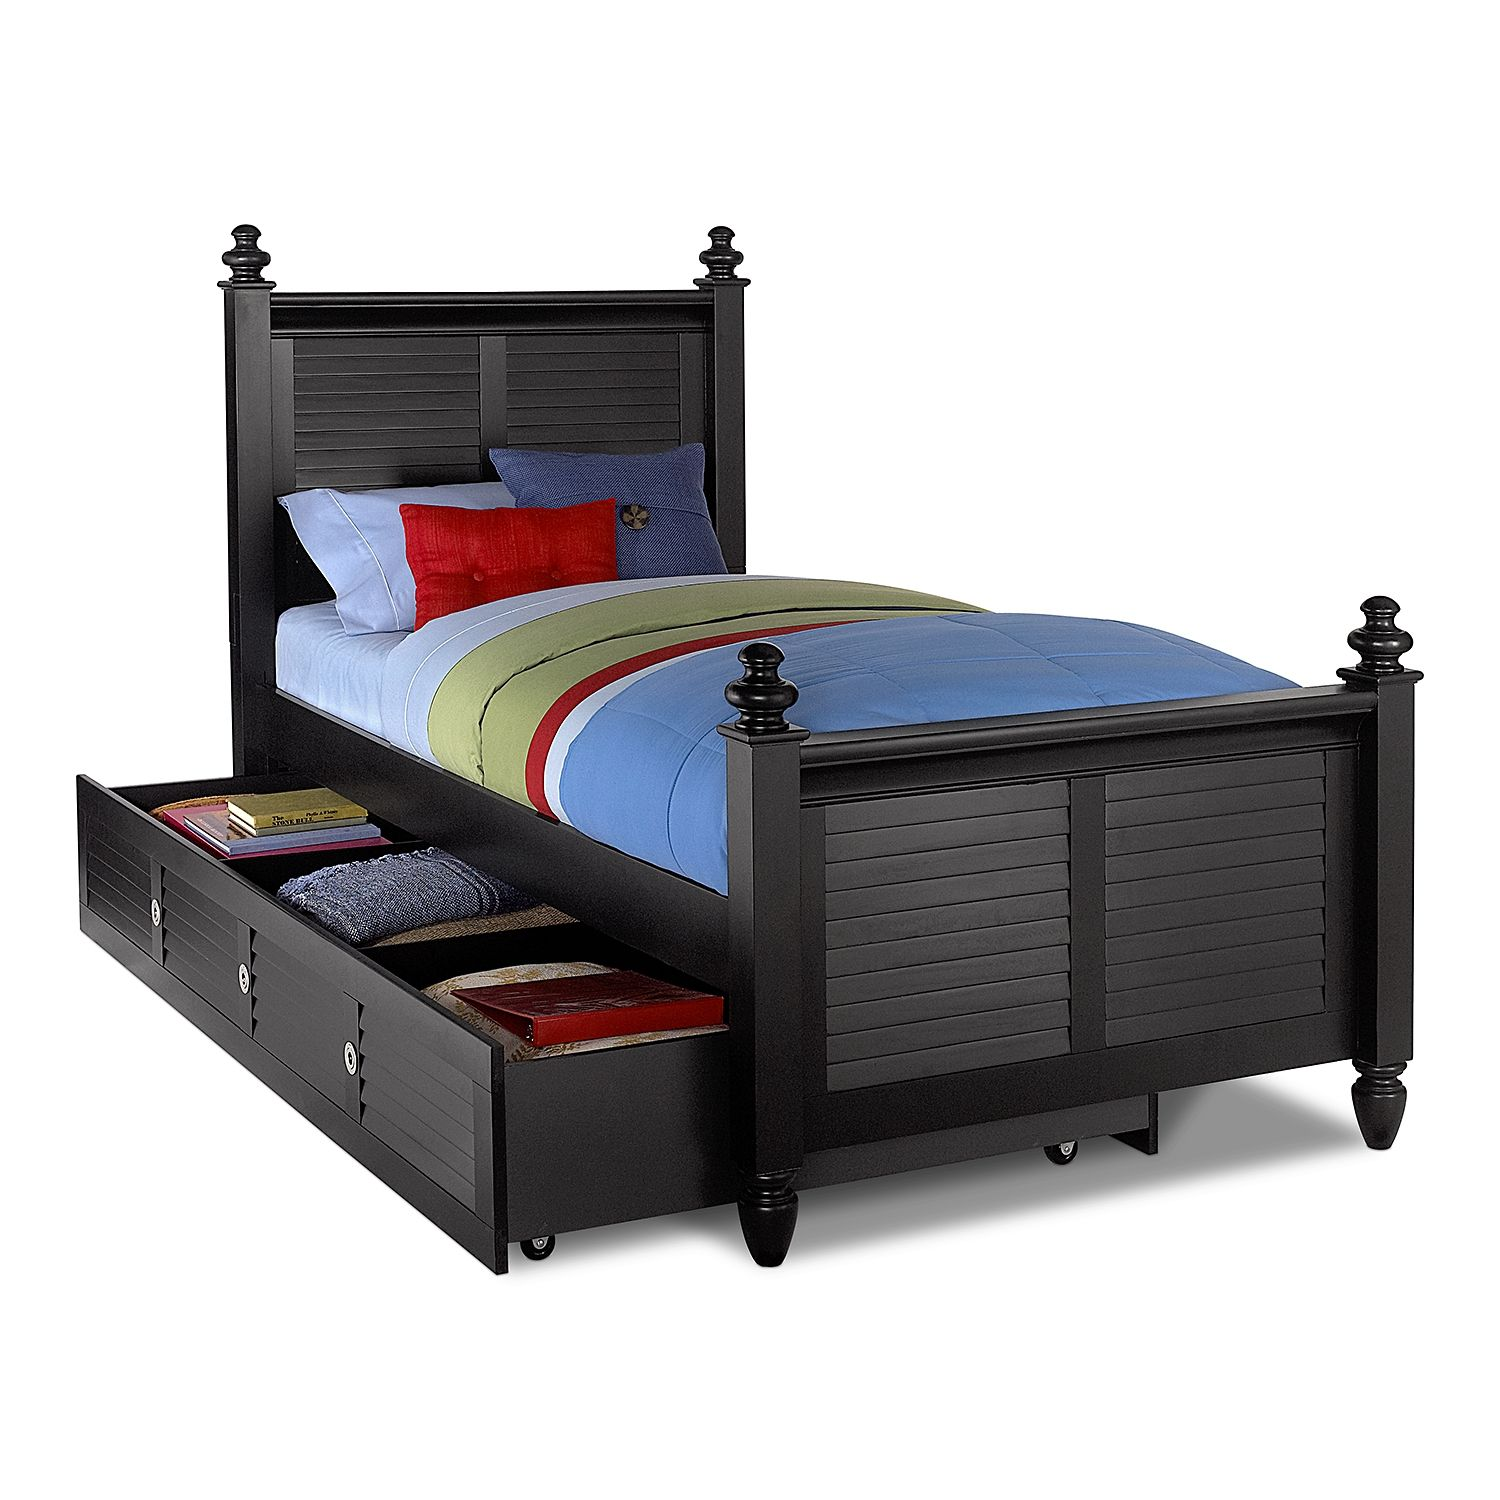 Kids Furniture Seaside Black Twin Bed With Trundle For The Boys